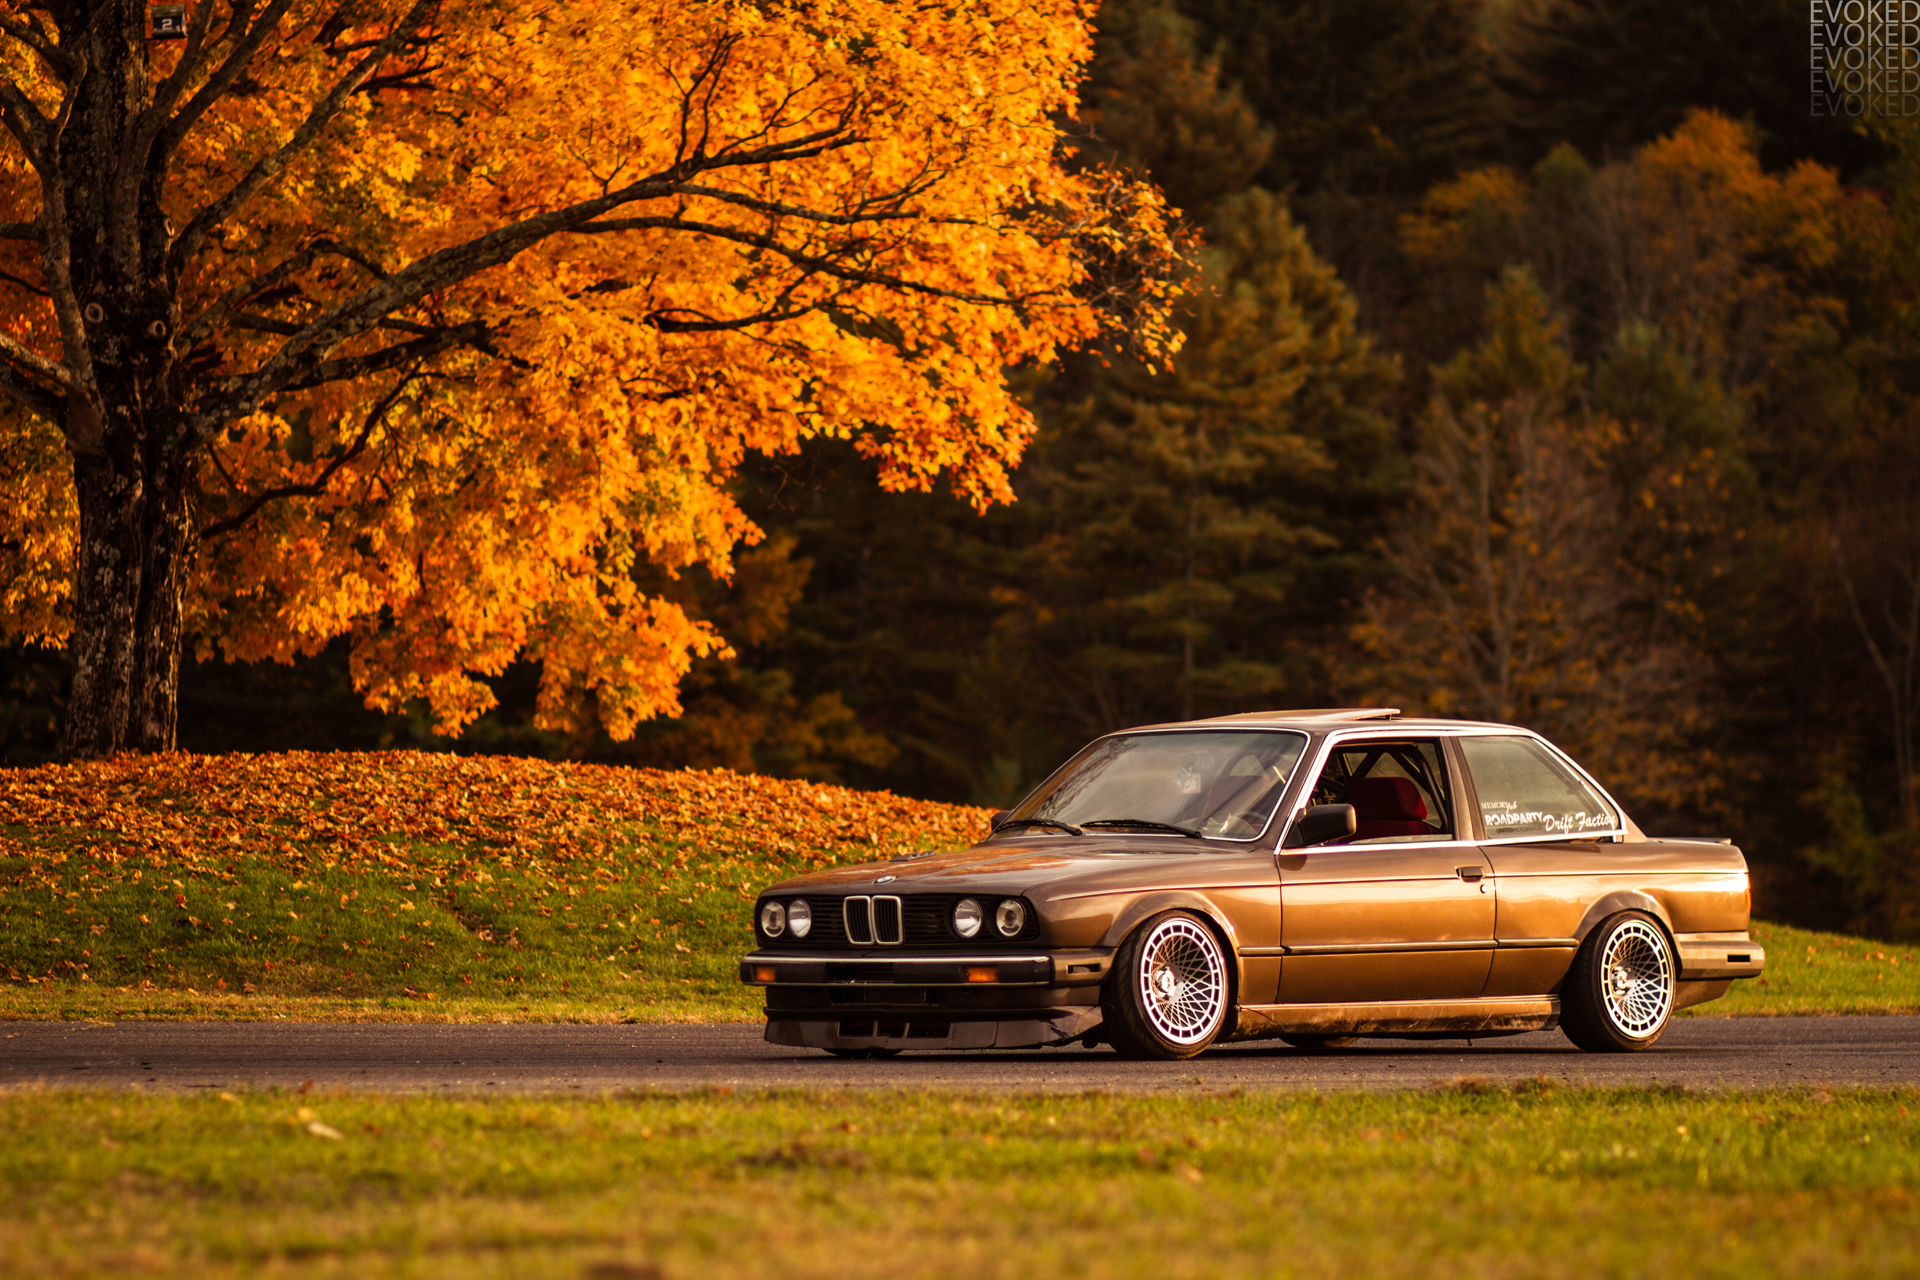 Cars Wallpaper Hd Wallpaper Bmw E30 Wallpapers Archives Page 2 Of 2 Hd Desktop